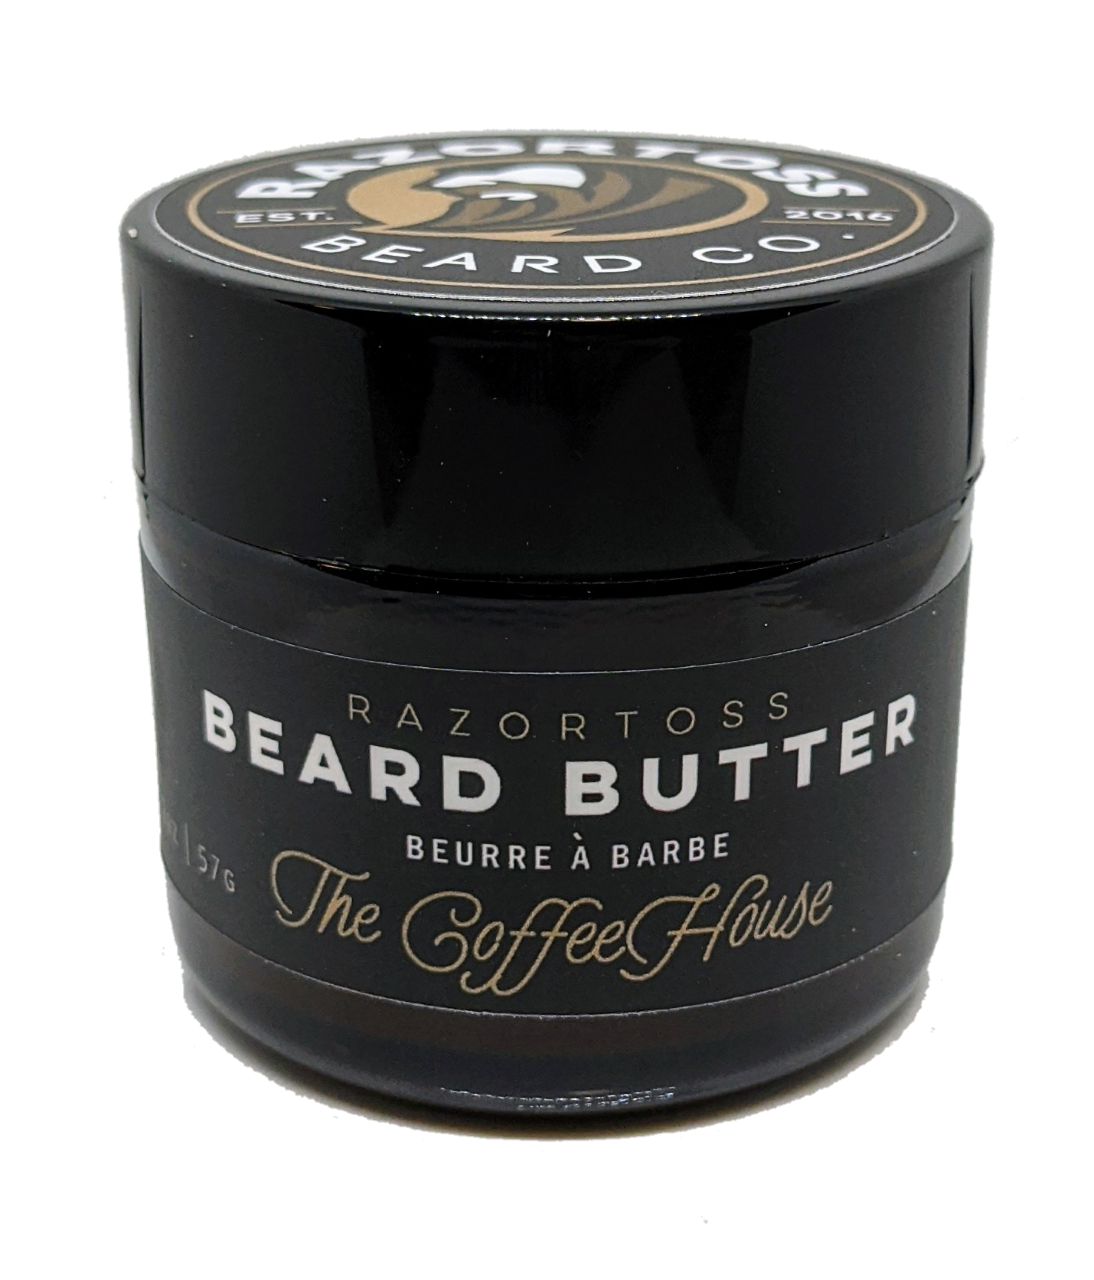 BEARD BUTTER 2oz. - The Coffee House